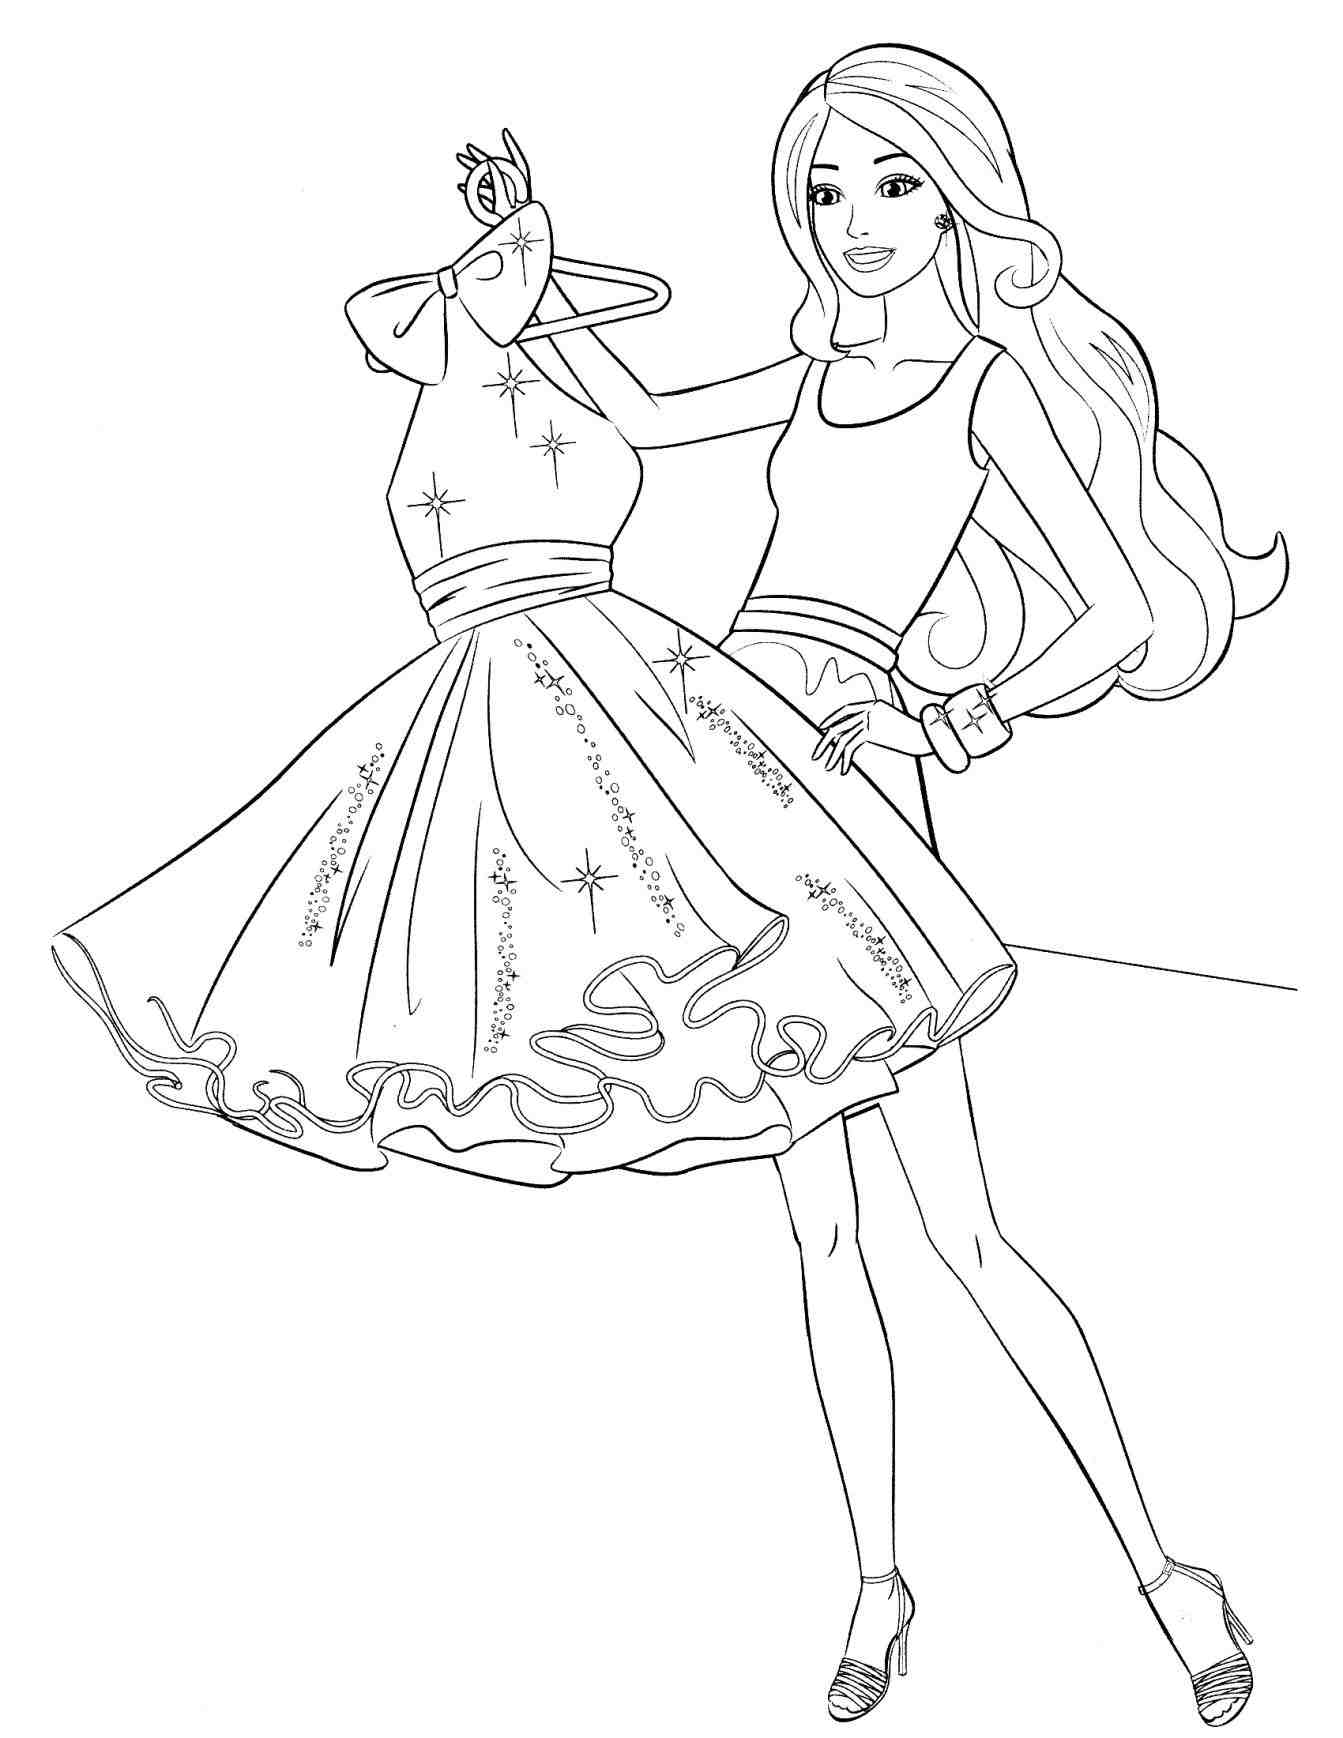 how to draw a barbie princess princess barbie drawing at getdrawings free download a barbie draw princess how to